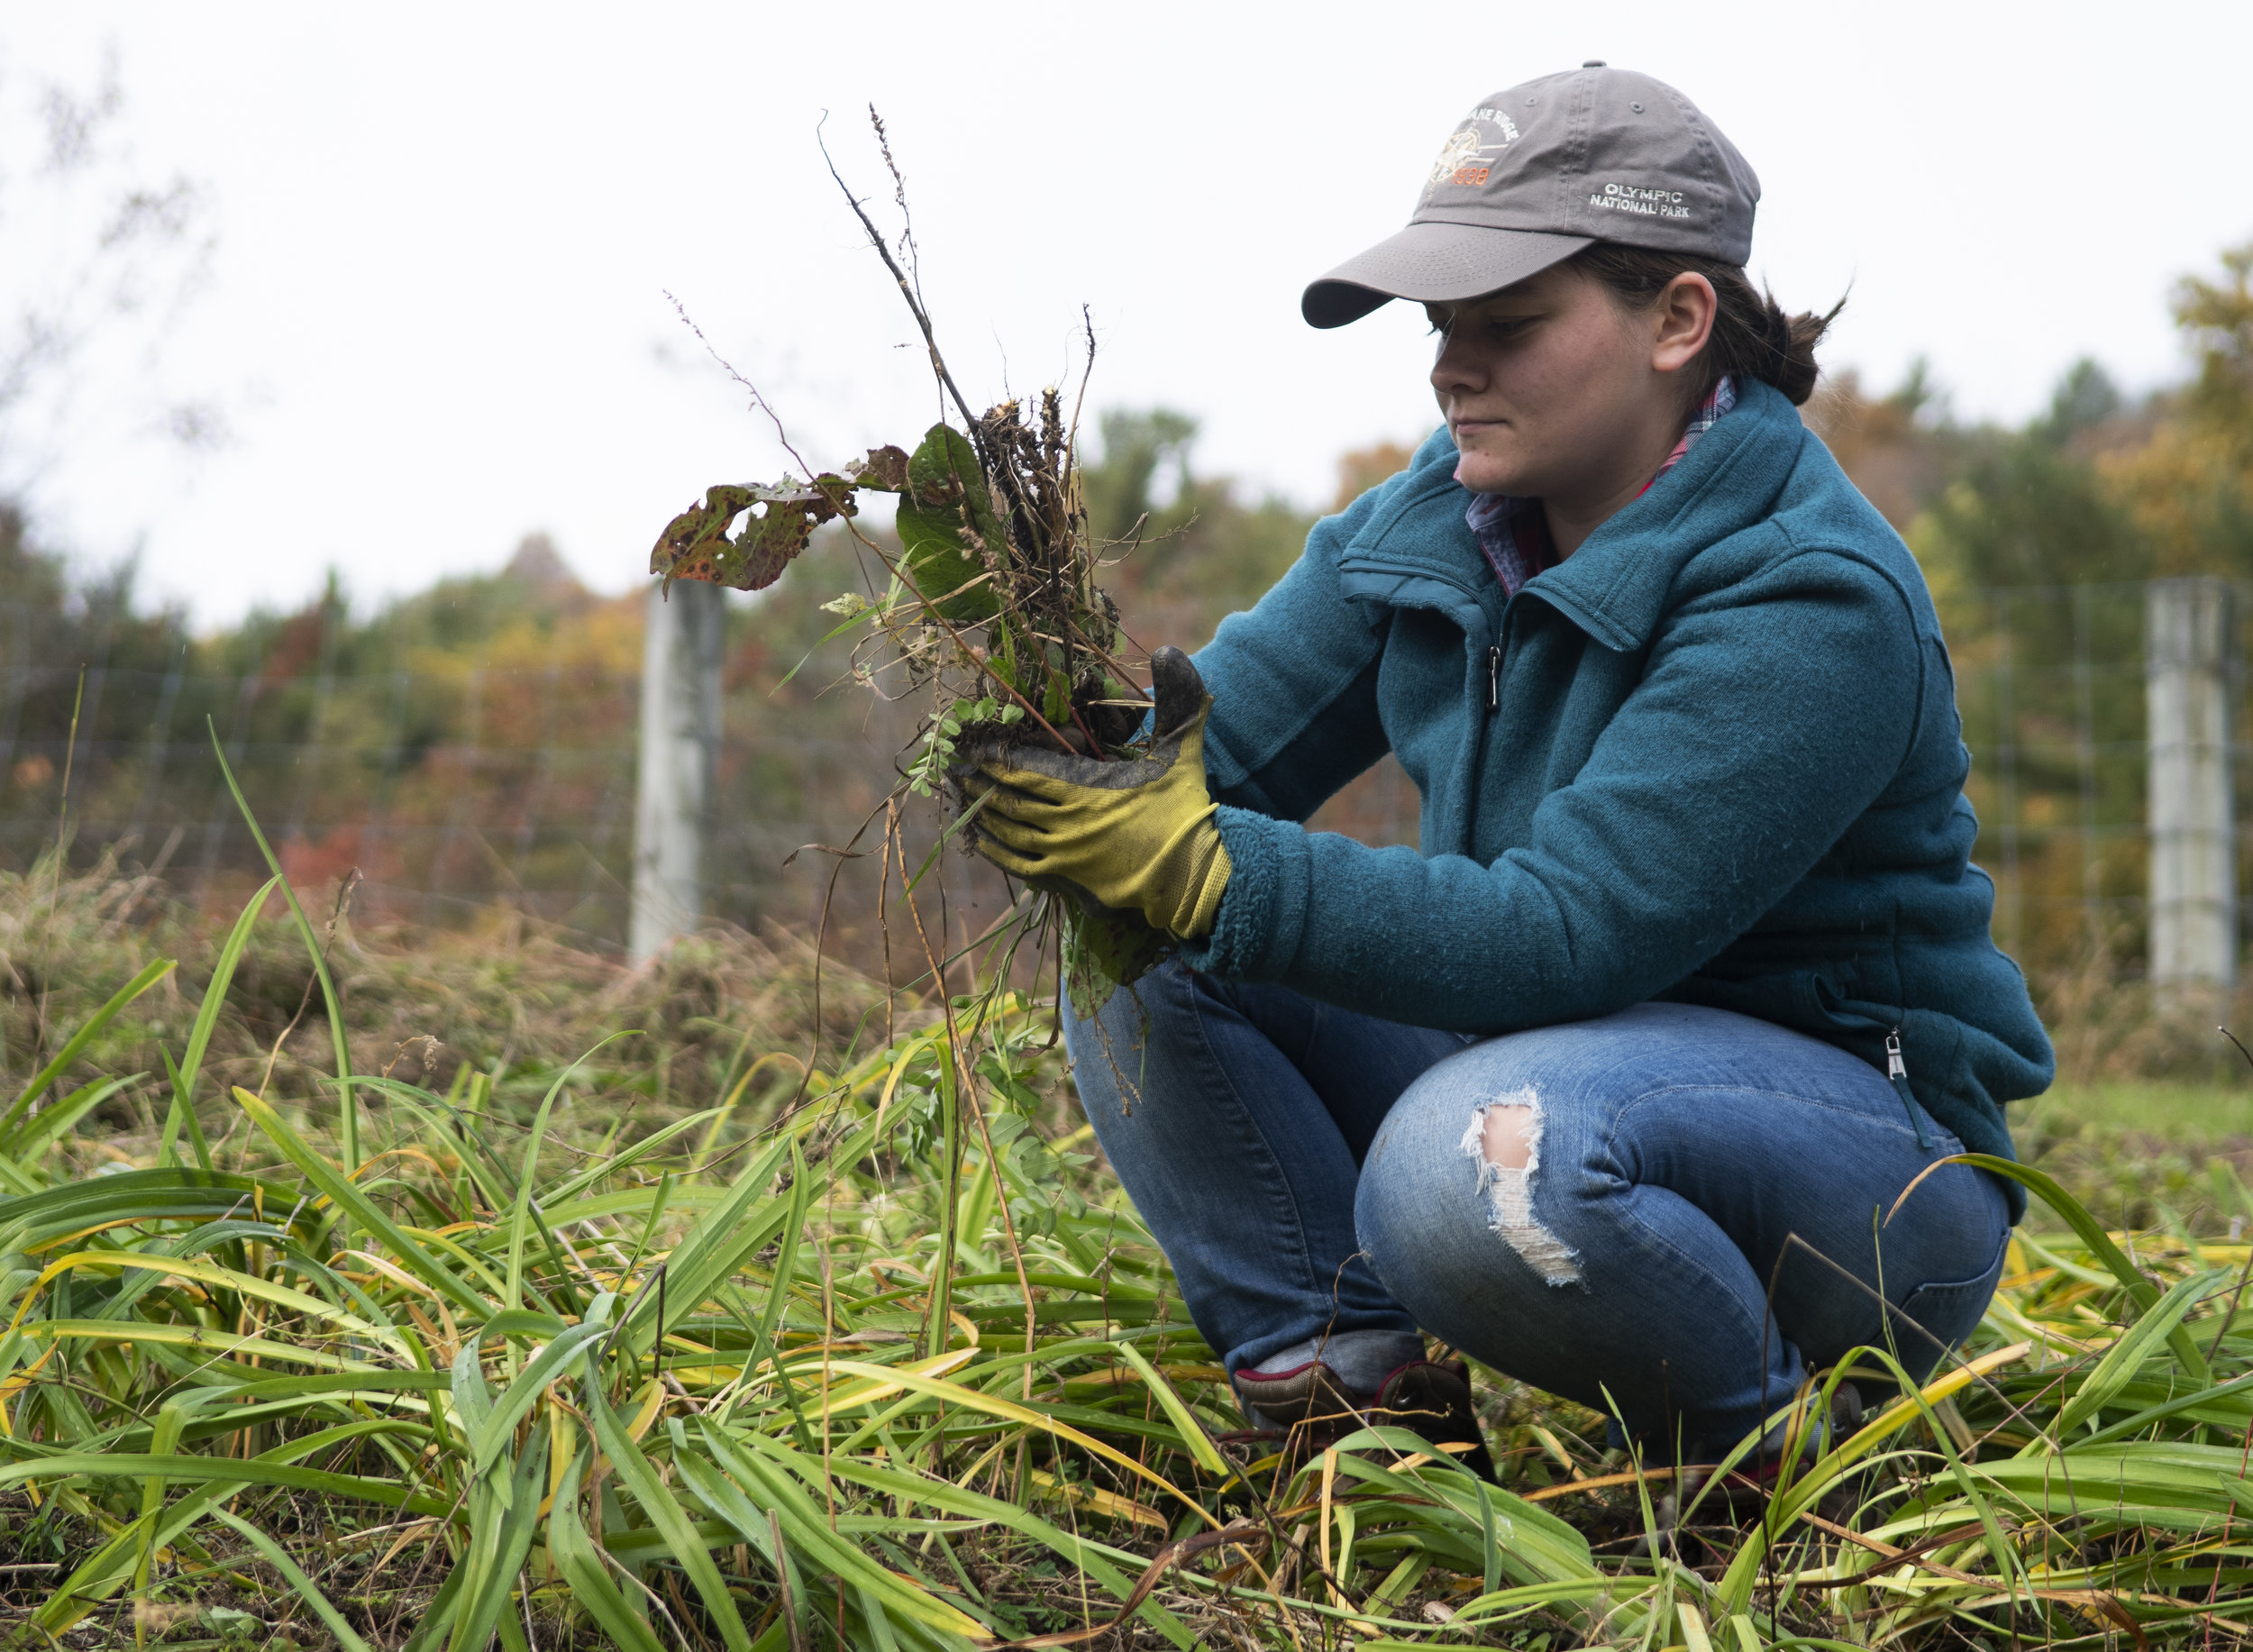 Deanna Homan (junior-plant science) pulls weeds during the Crop Mob event at The Barn on Valley View Road in Bellefonte on Nov. 3, 2018.